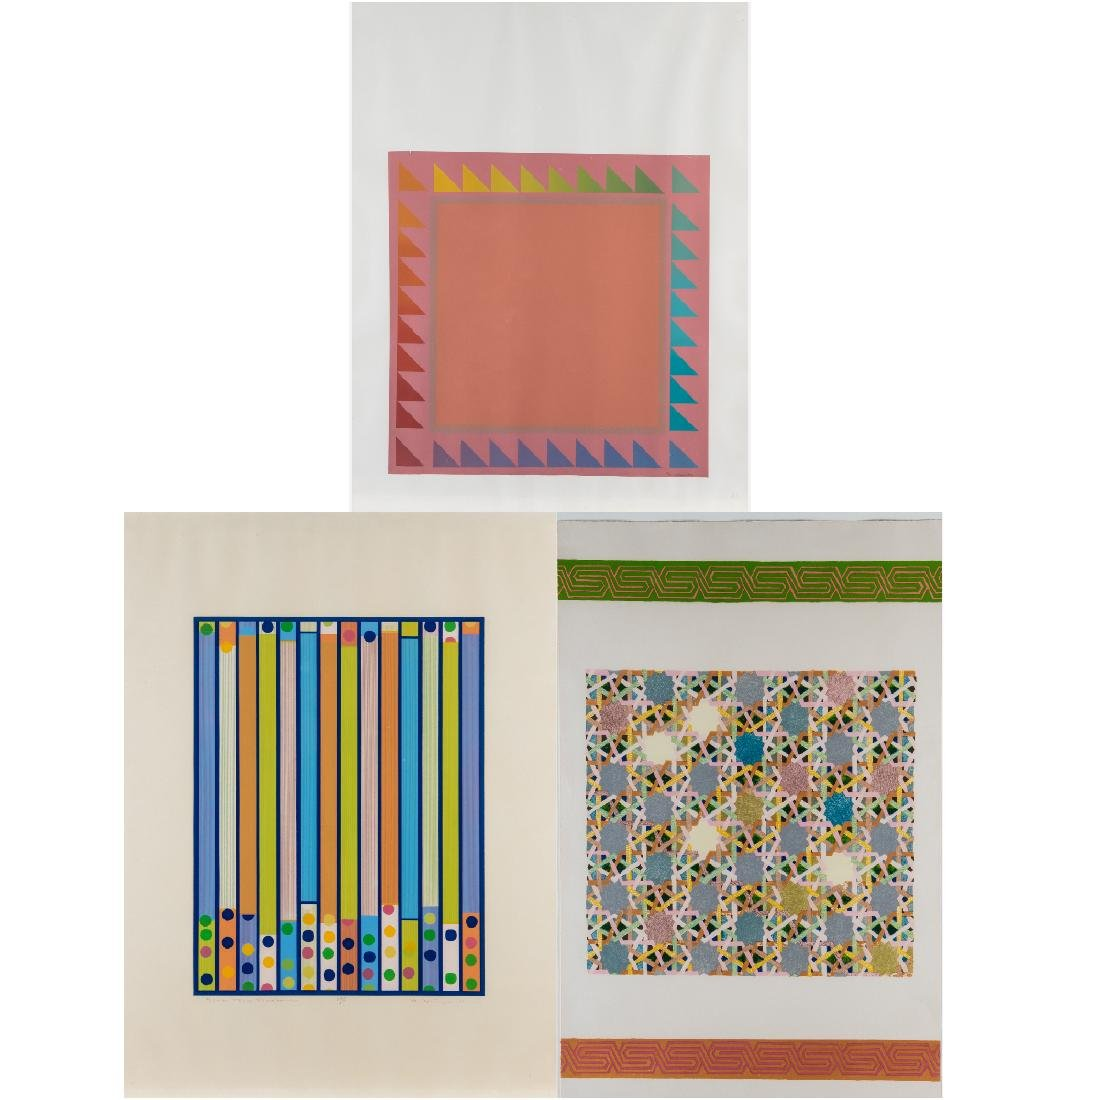 A Group of Three Framed Lithographs and Serigraphs by